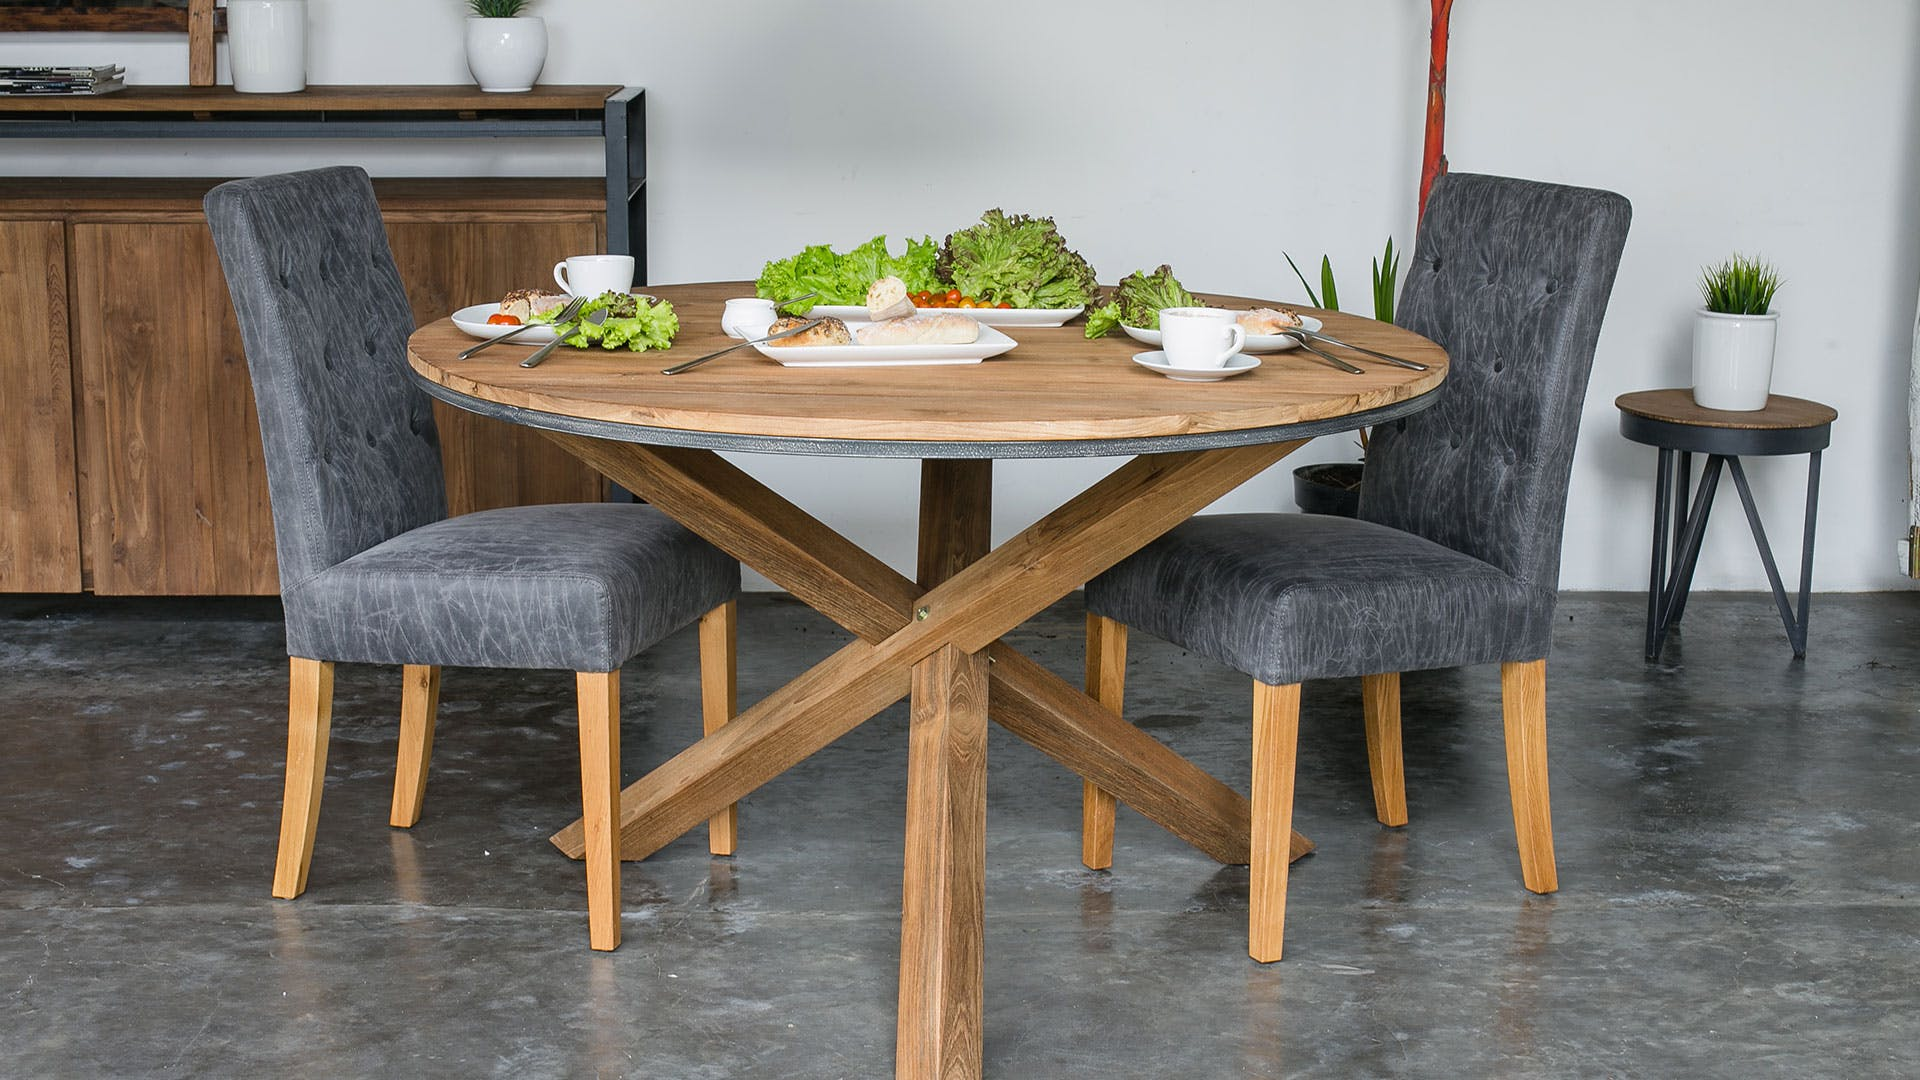 fendy round dining table by dbodhi collection. fendy round dining table by dbodhi collection  harvey norman new